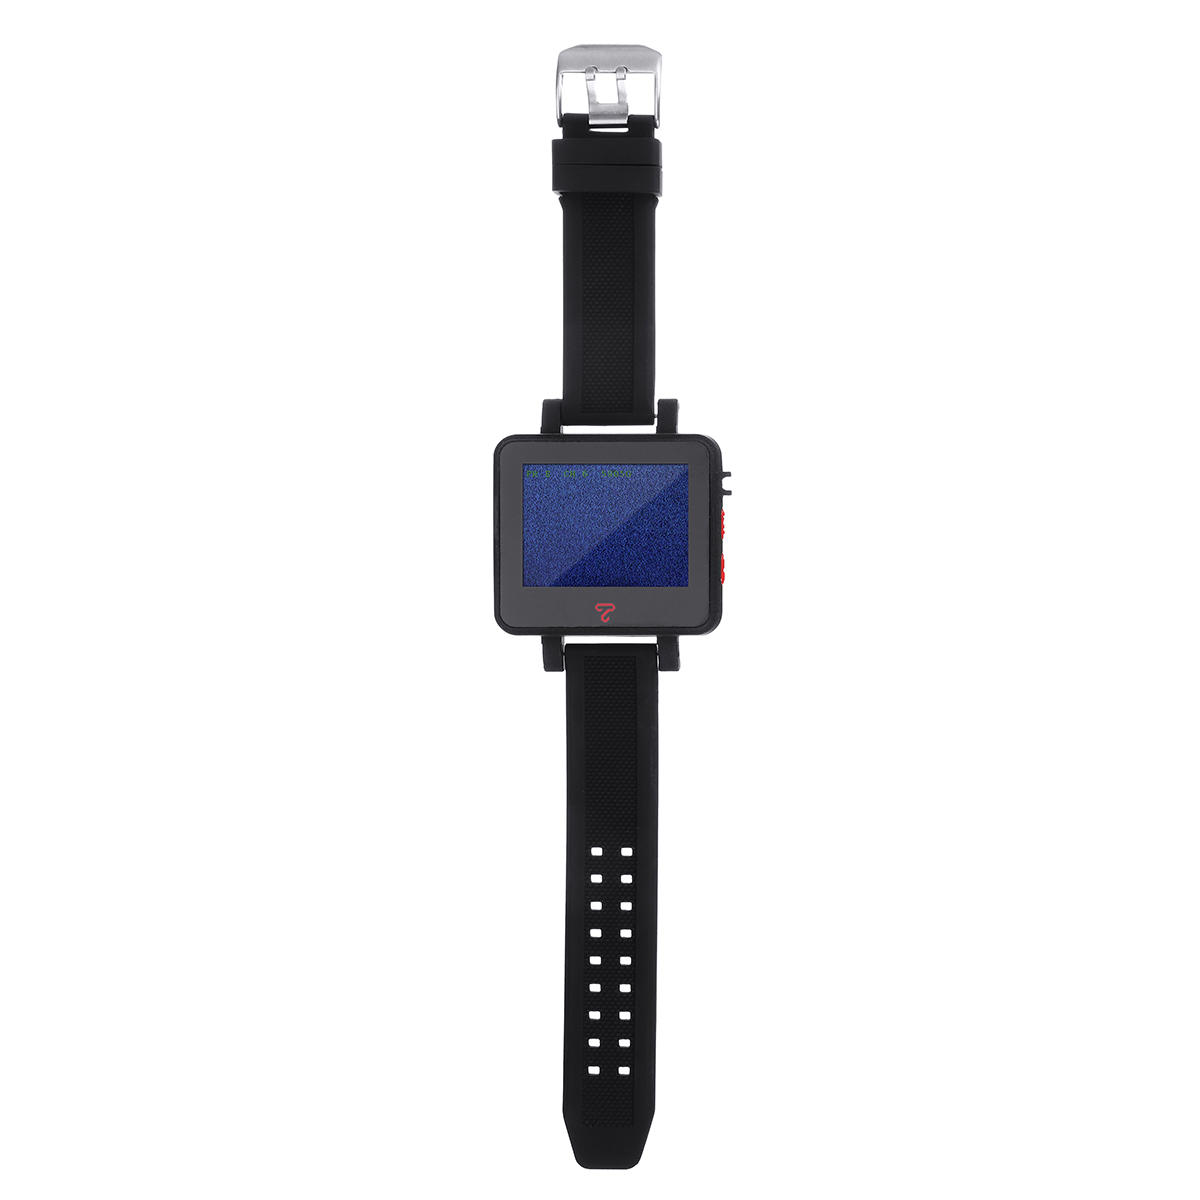 Topsky 2 Inch 5.8Ghz 48CH FPV Watch Monitor Receiver OSD Built-in Battery MMCX for RC Drone